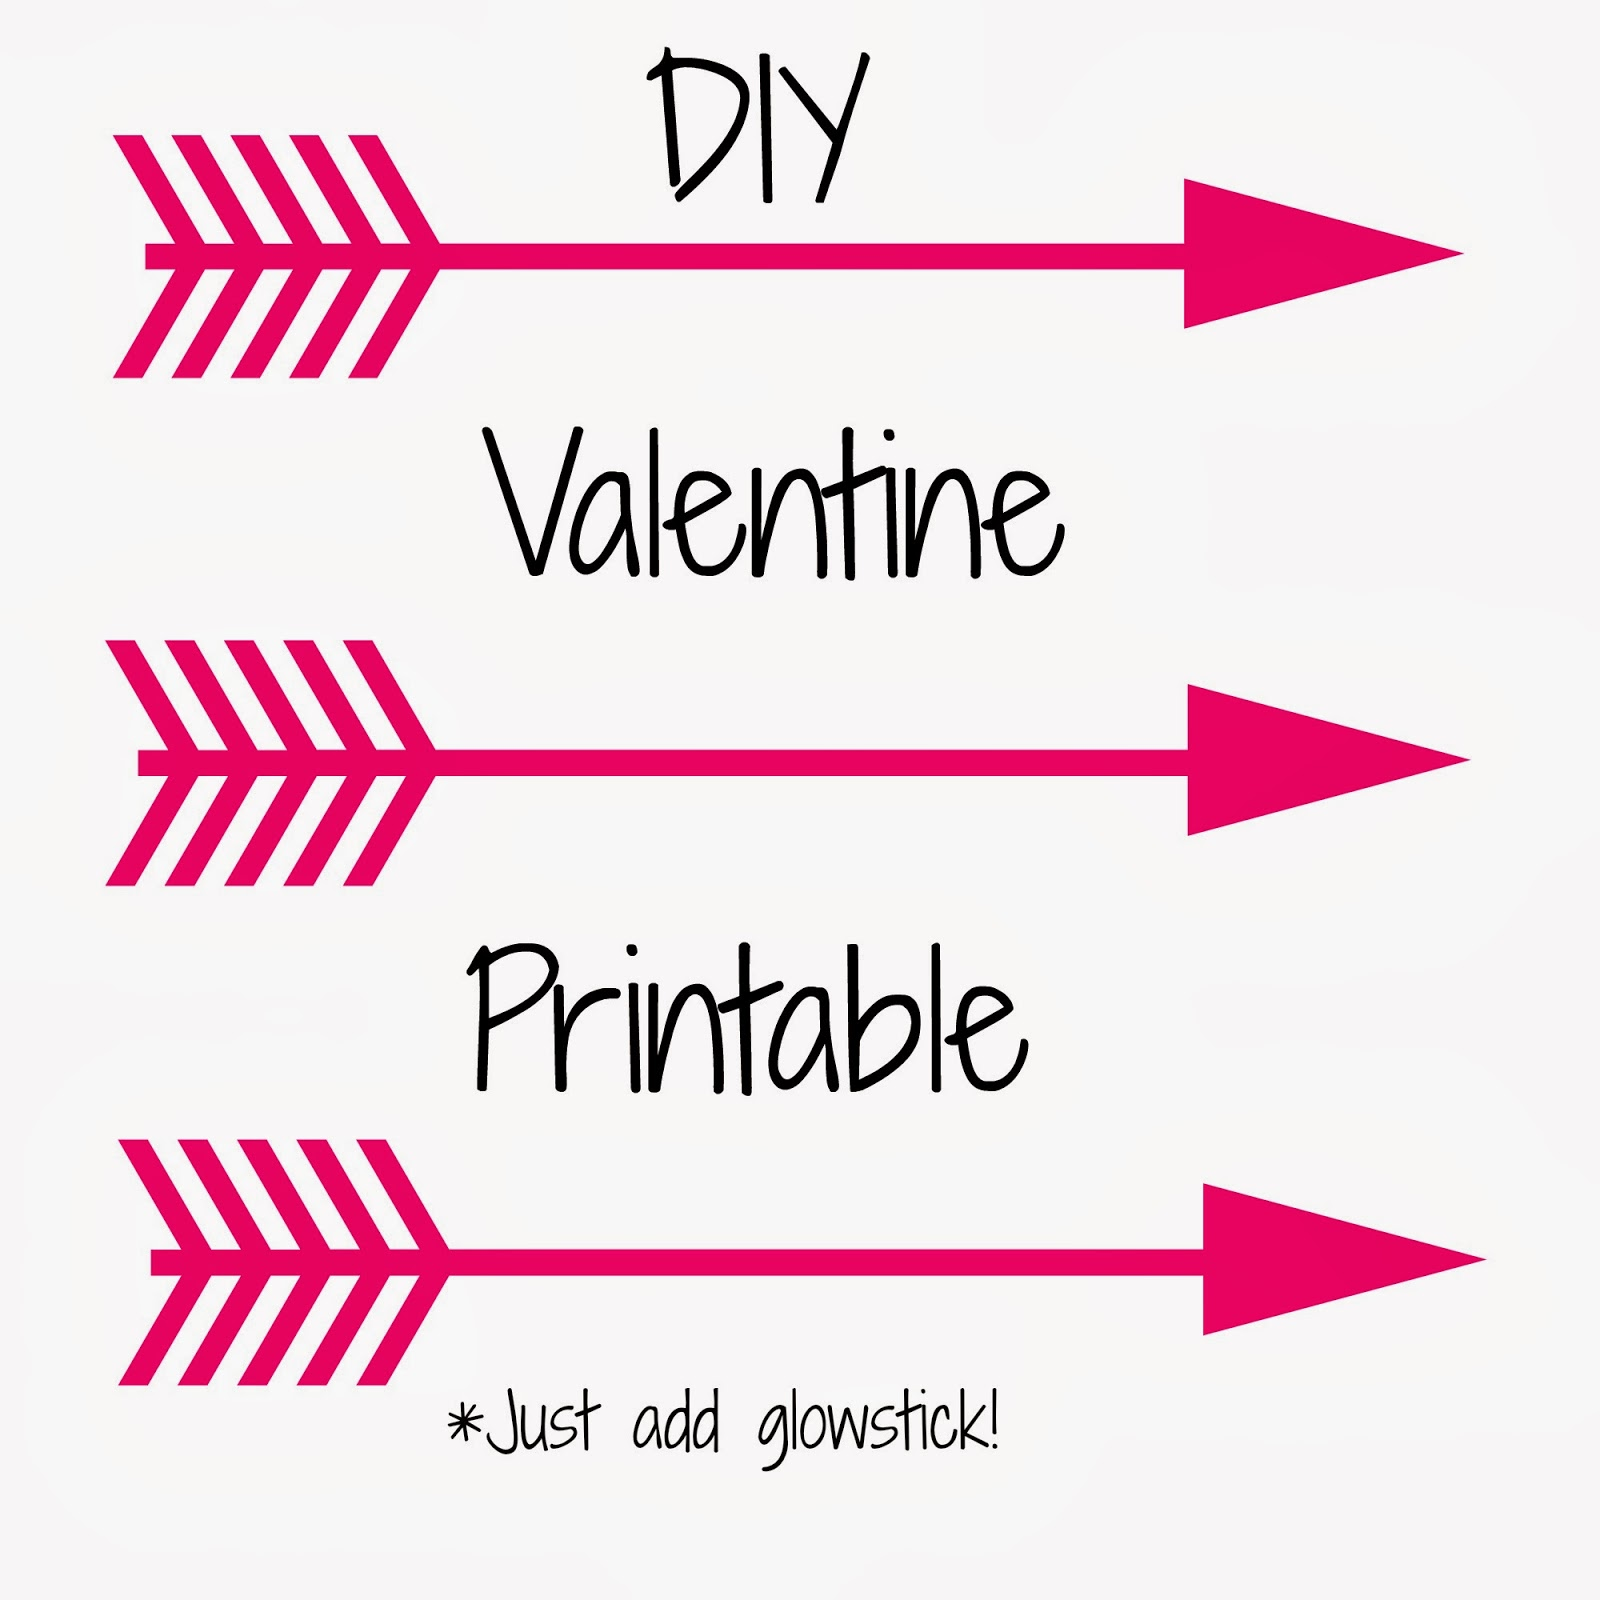 photo regarding Free Printable Arrows known as Sighs:: Do it yourself Shine Adhere Arrow Valentine - No cost Printable!